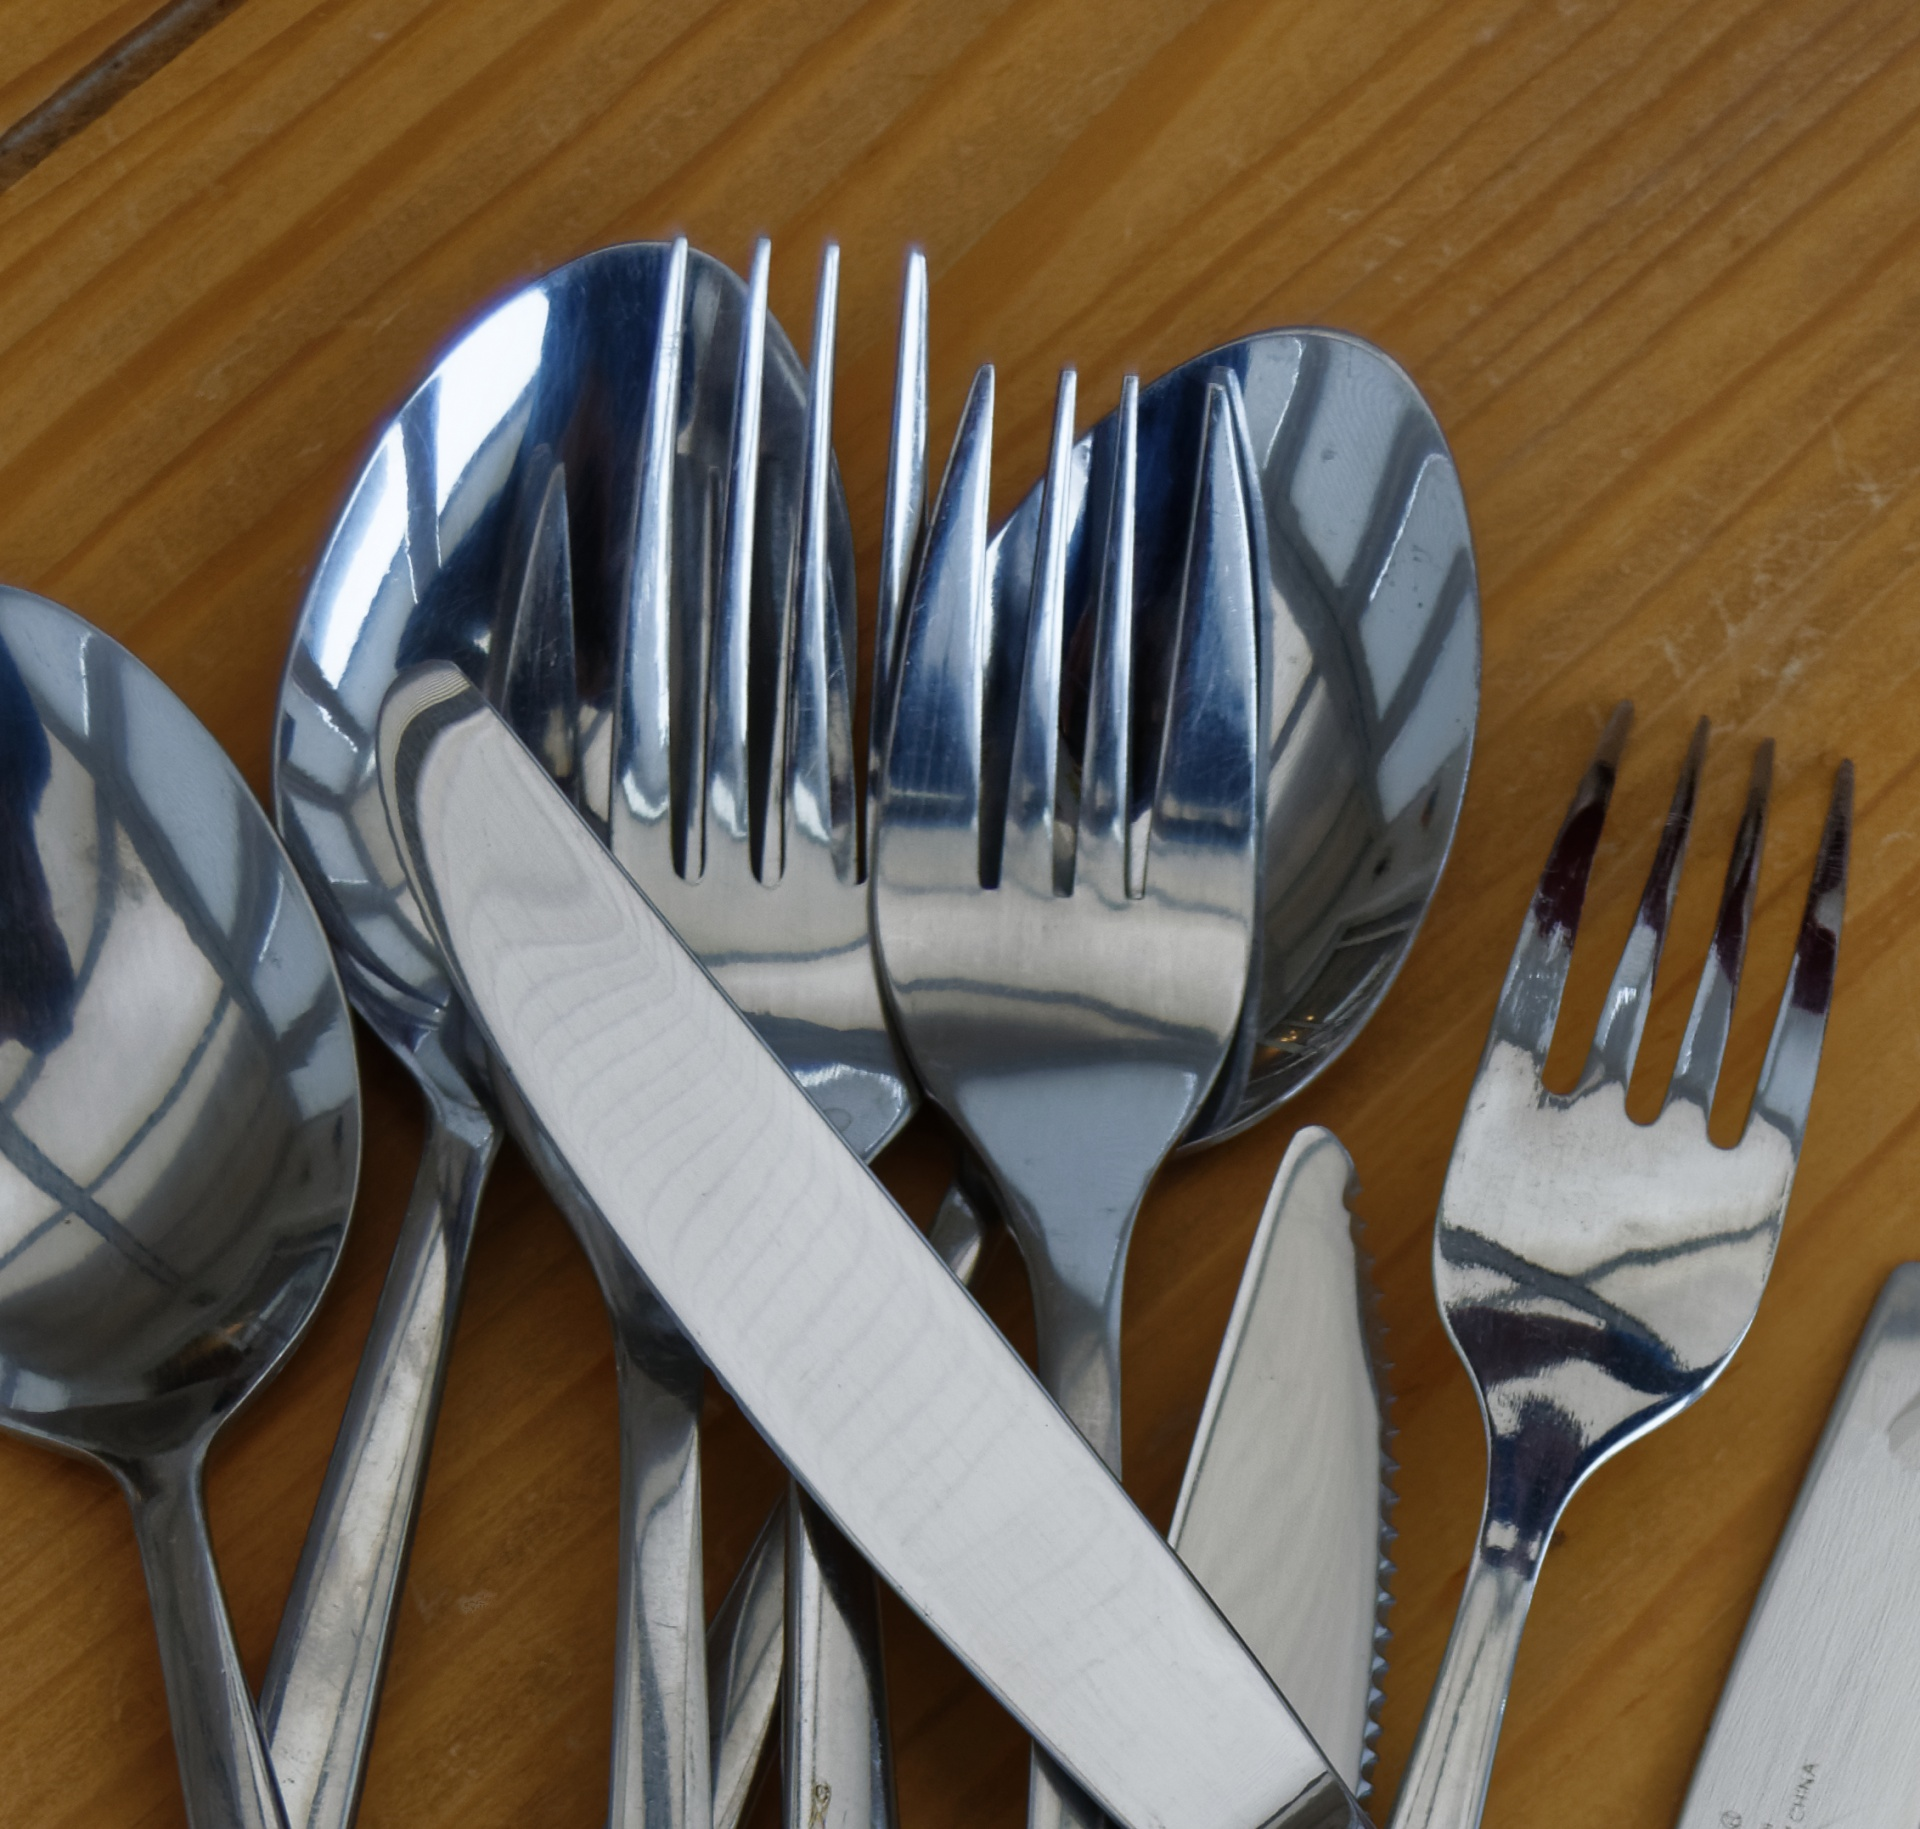 Poetry, Eating Utensils, Forks, Flatware